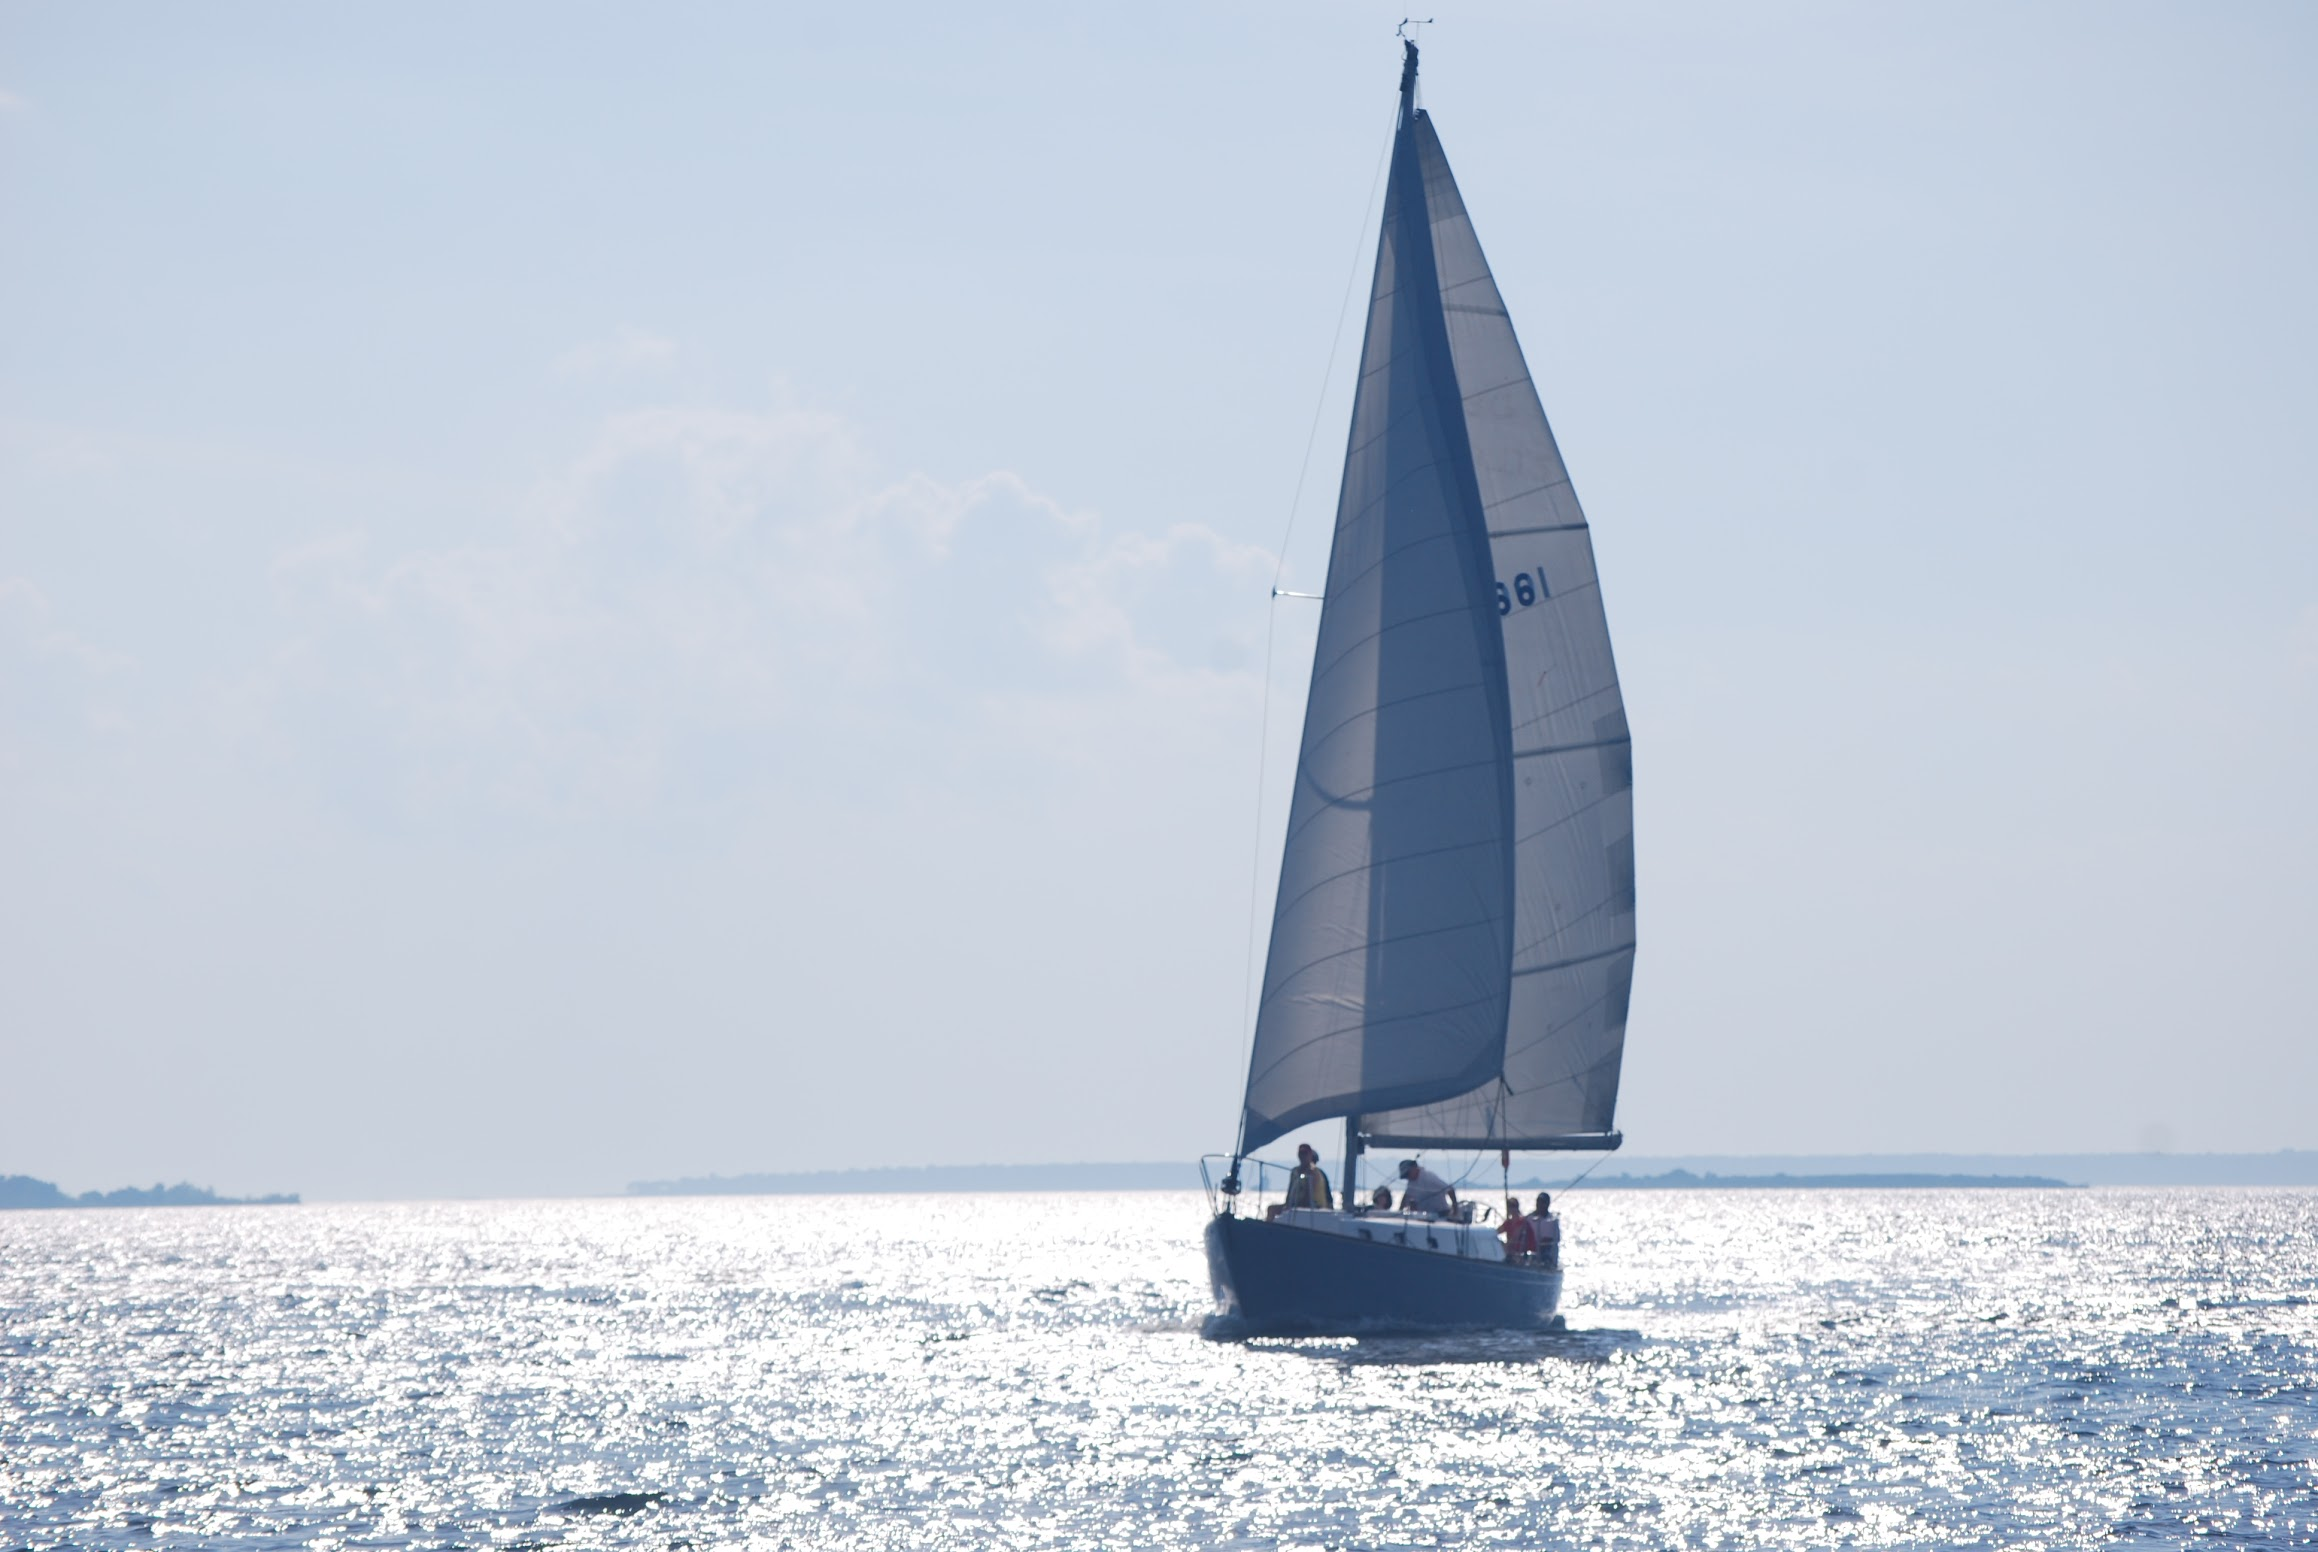 Passage North - This 40 foot sloop is the epitome of classic, luxurious sailing, so bring your linen pants and Sperrys!We're totally kidding. Linen pants and Sperrys optional.Our Cal 40 is fast, sleek, and modern. If you're looking for that classic sailing experience, this 6 passenger sailboat is the one for you!